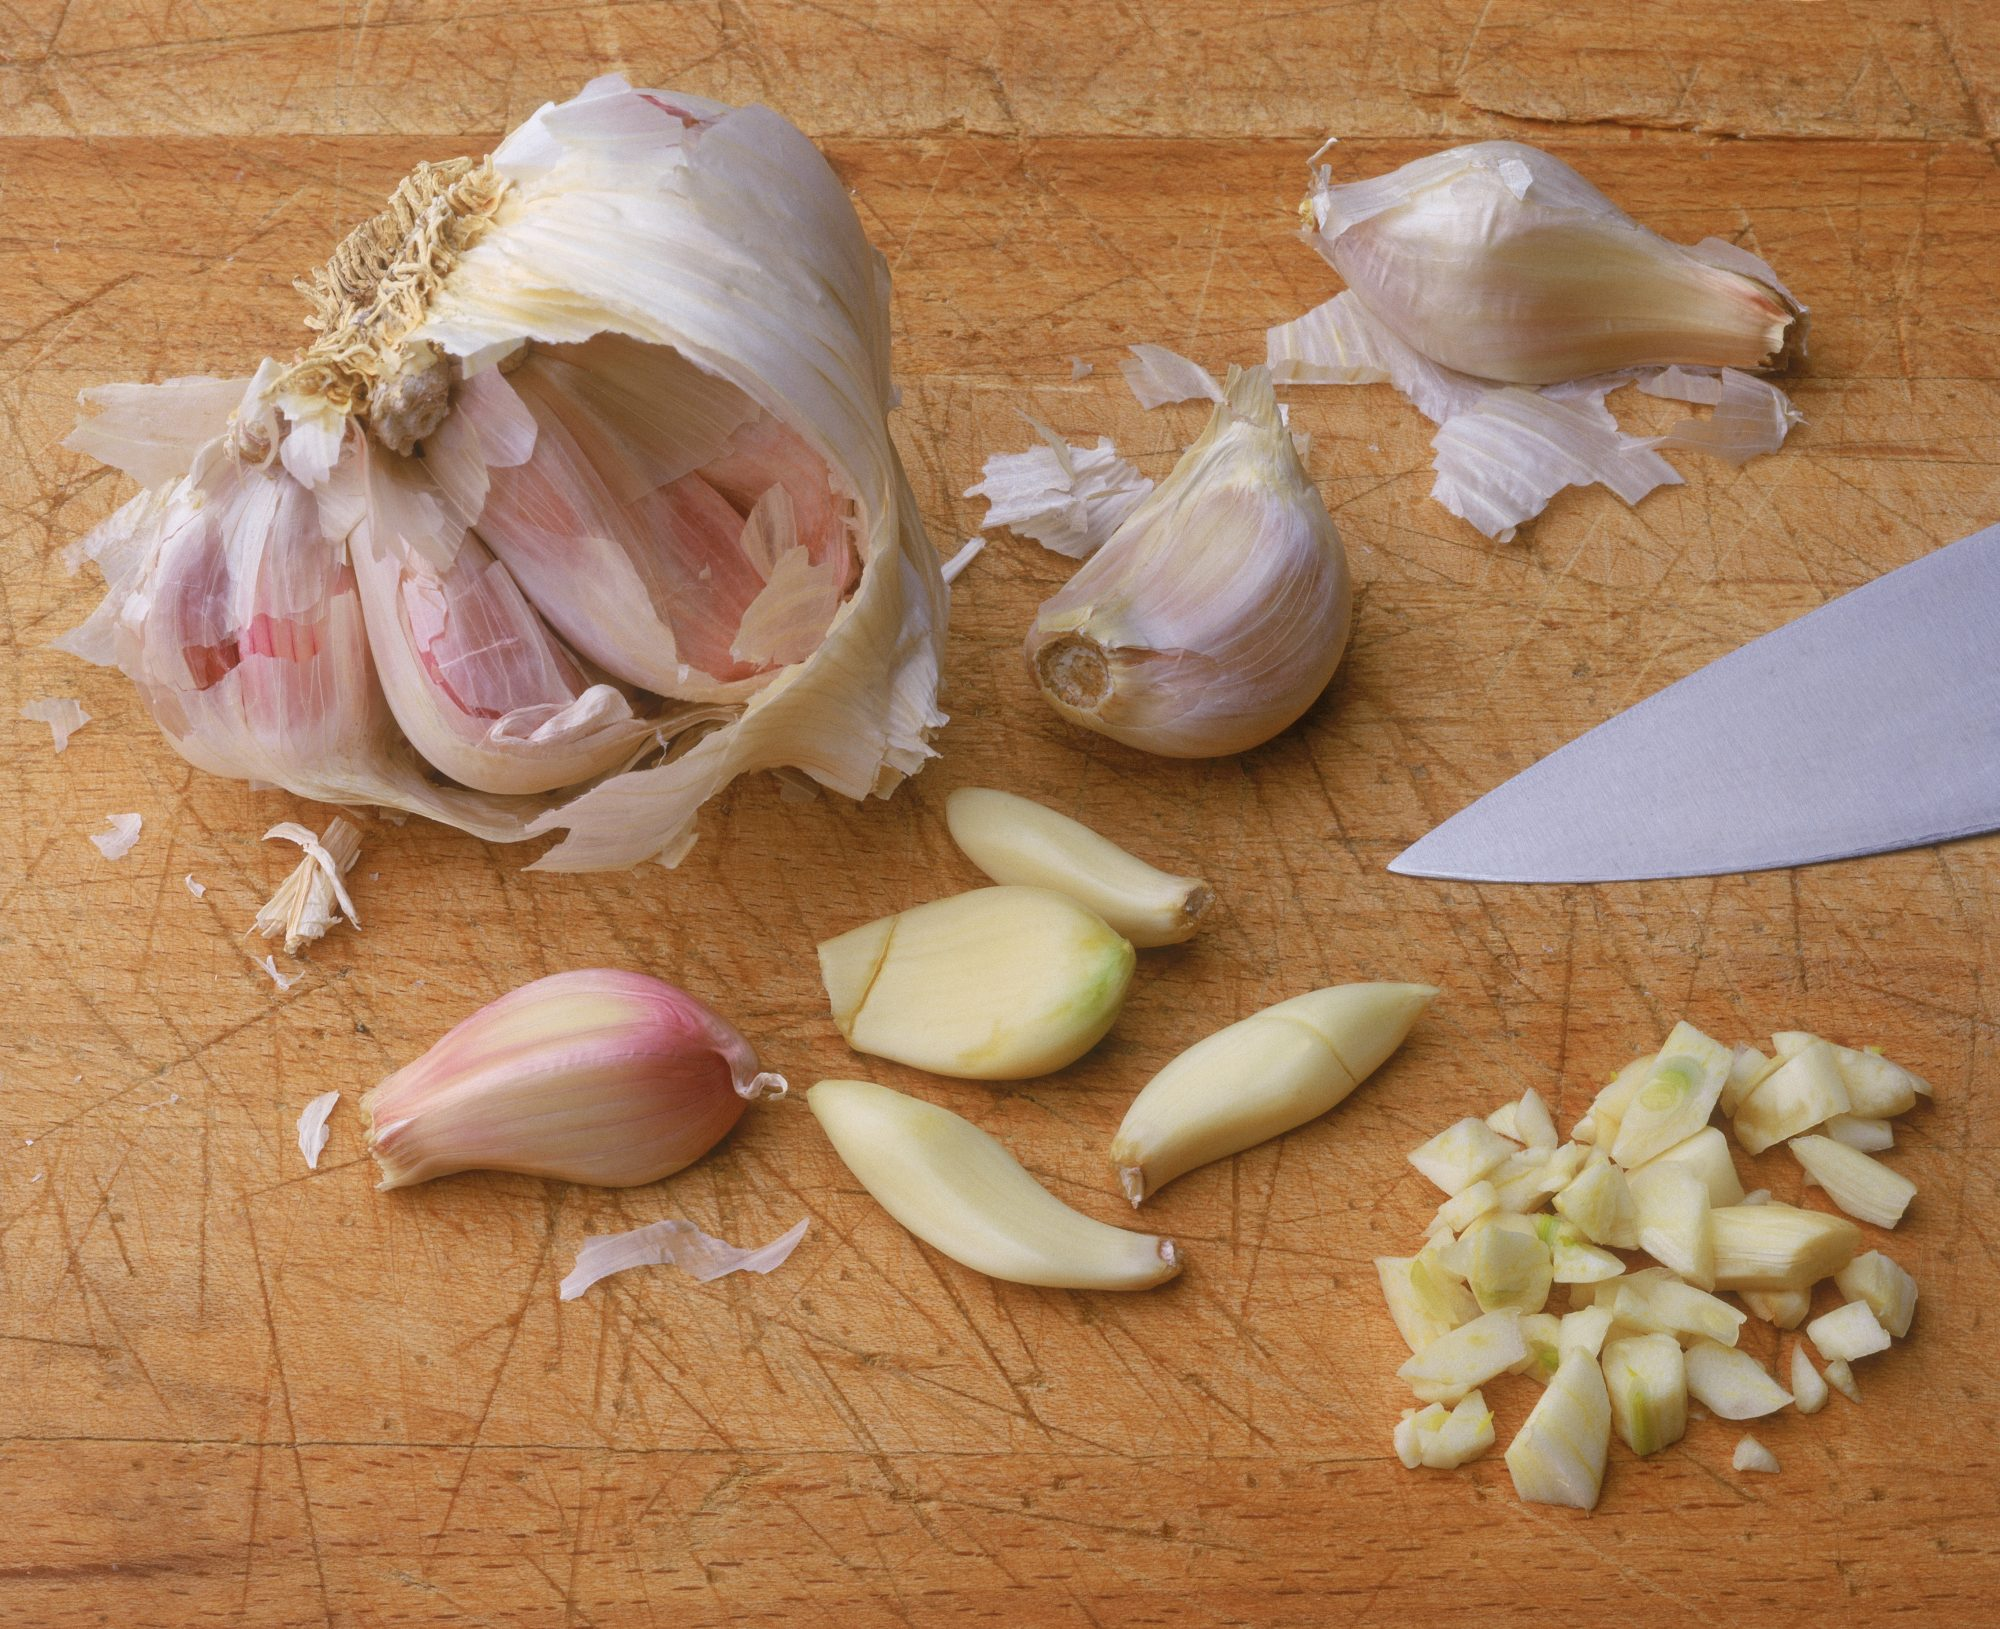 4 Common Ways You're Ruining Your Garlic